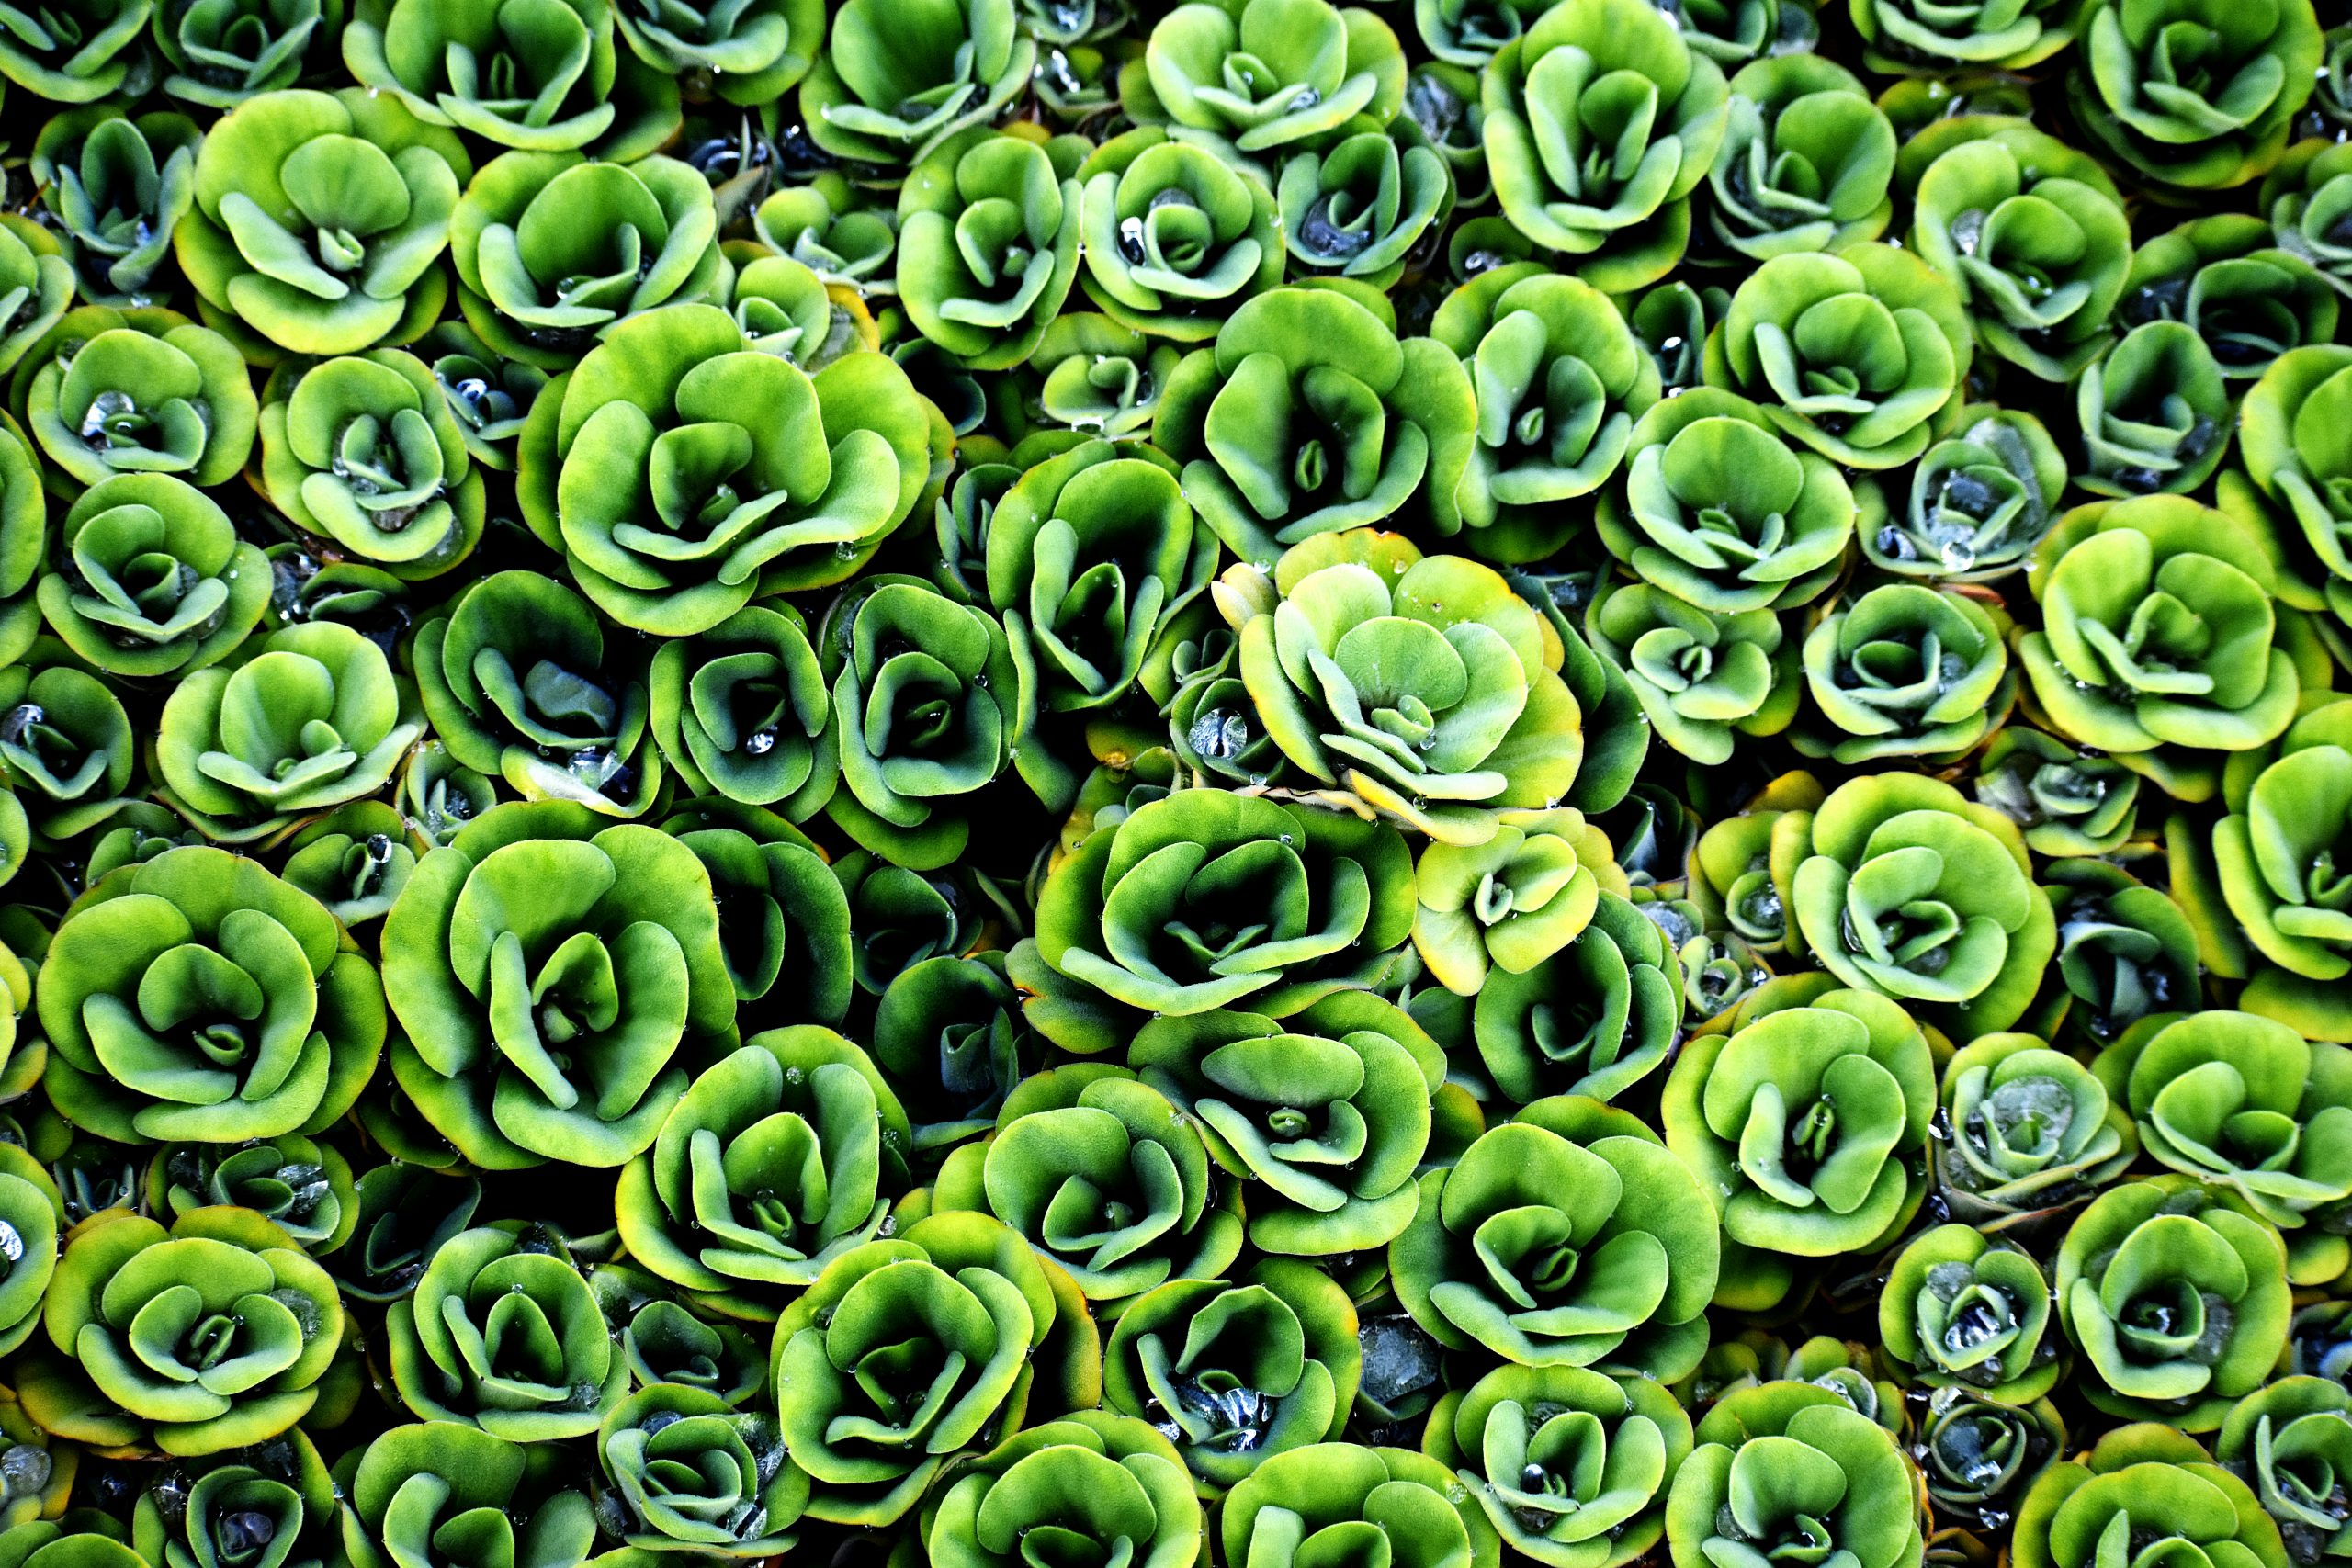 Patterned Decorative Water Plants